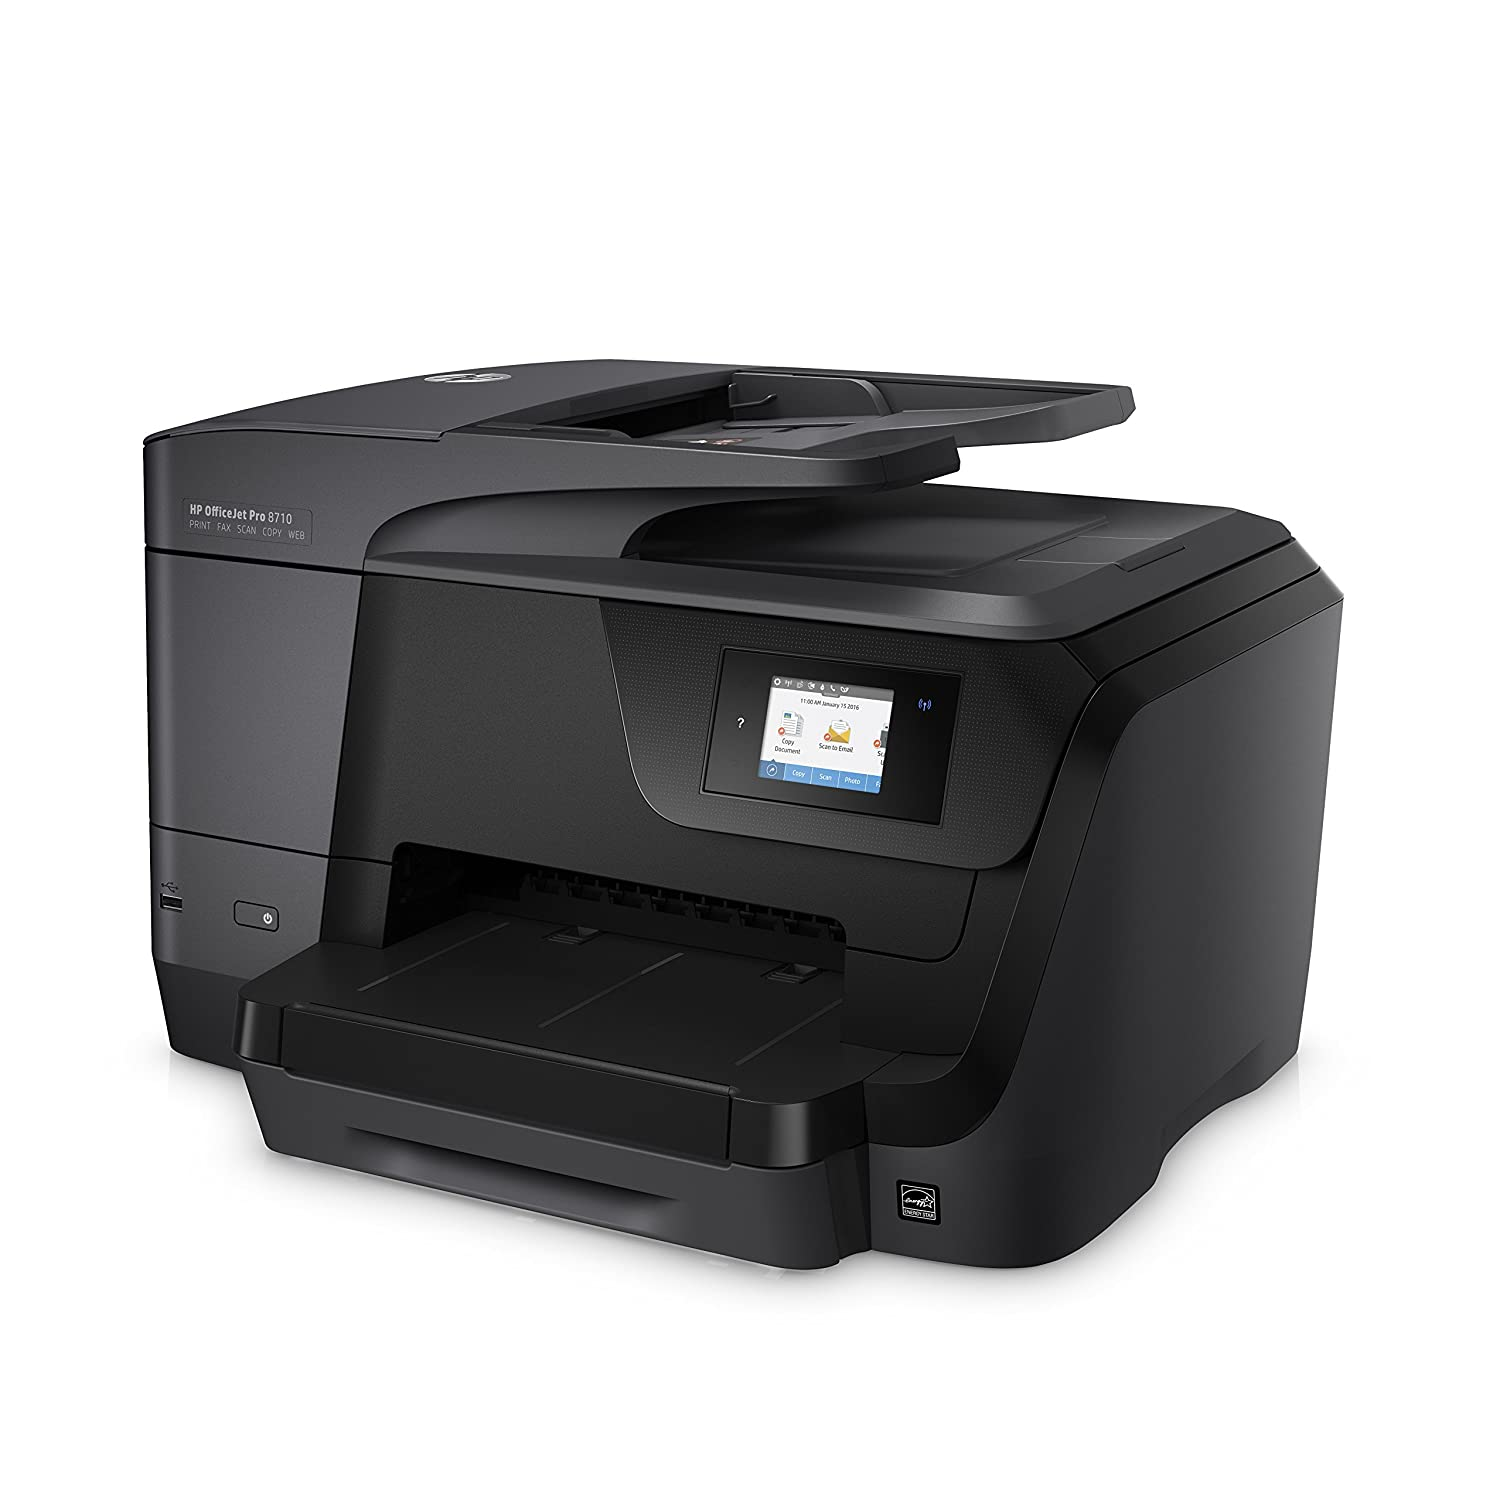 Black HP Officejet Pro 8710 All-in-One Printer Instant Ink Compatible